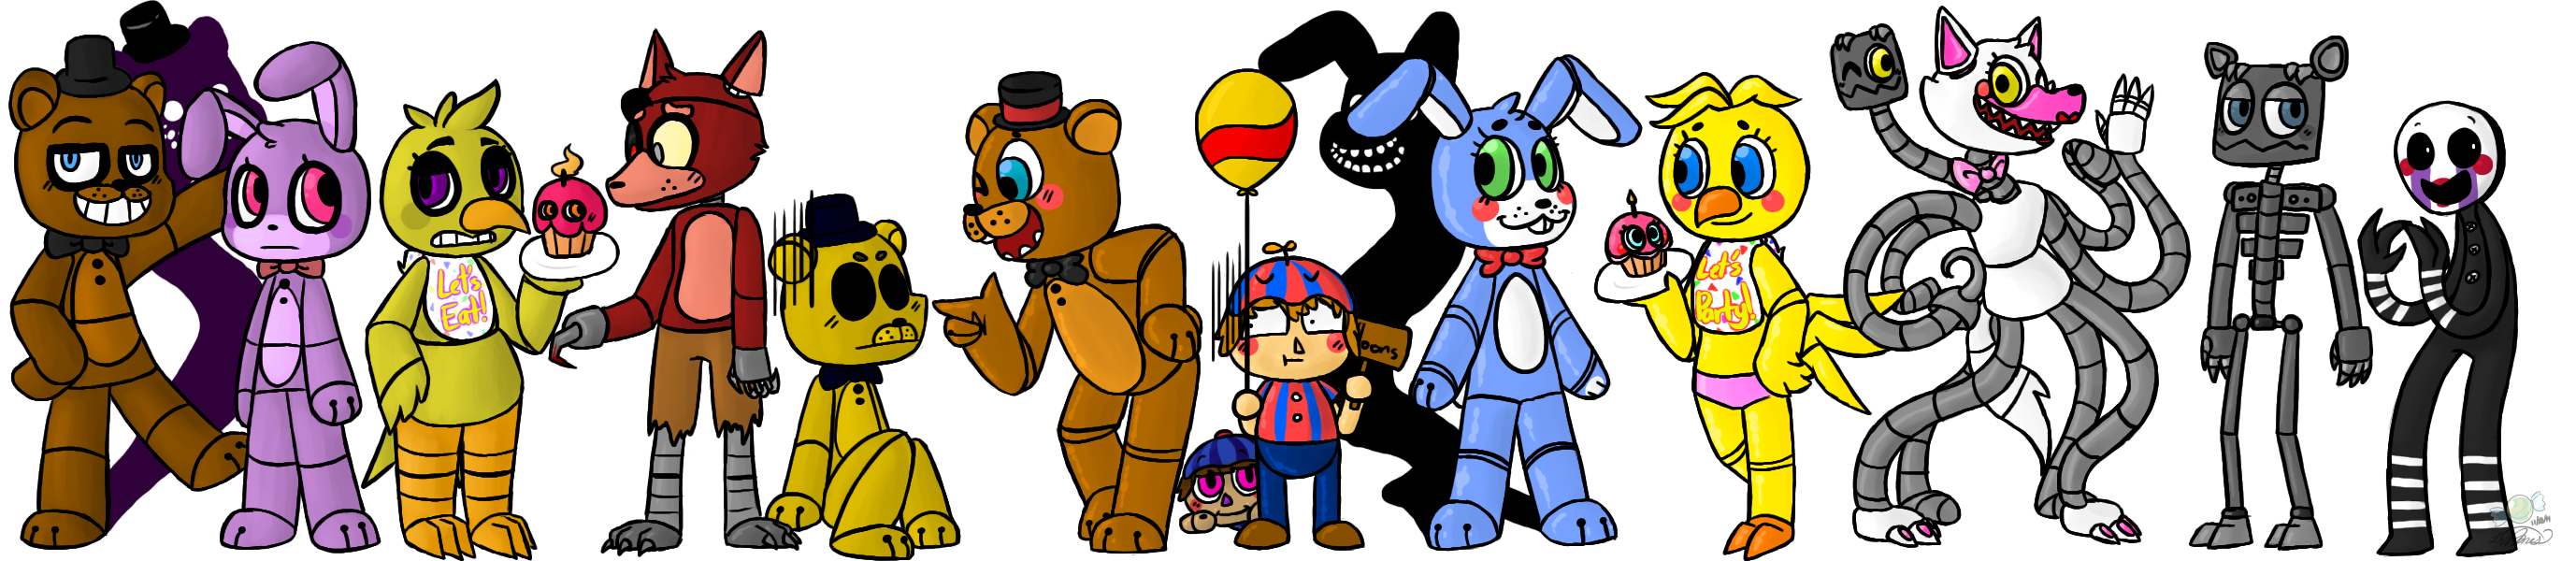 Coloring pictures five nights at freddys 2 cartoon coloring pages -  Five Nights At Freddy S 2 By Candykidneys